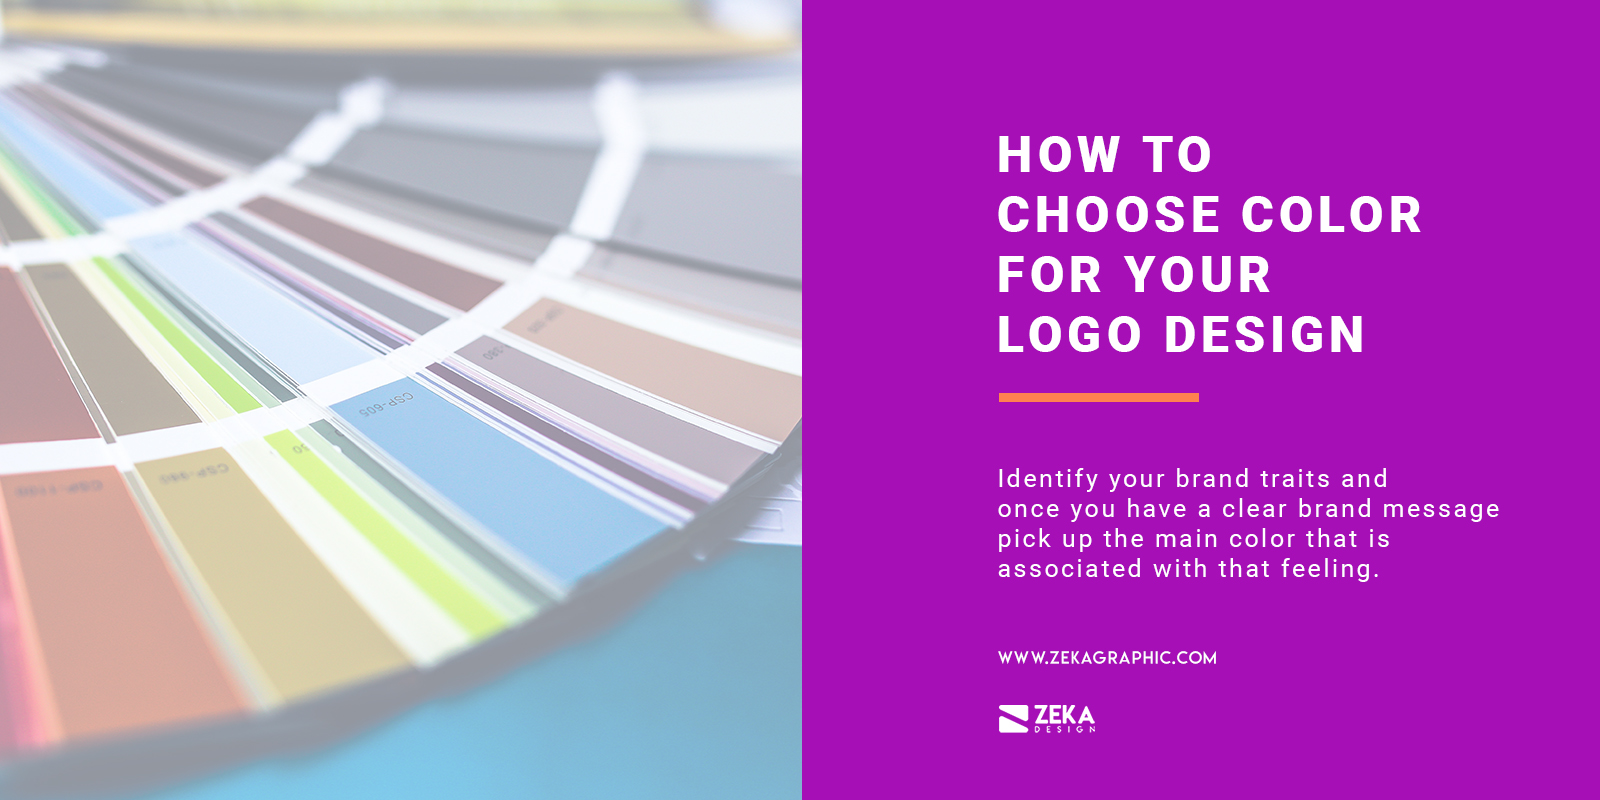 How To Choose Color for Logo Design